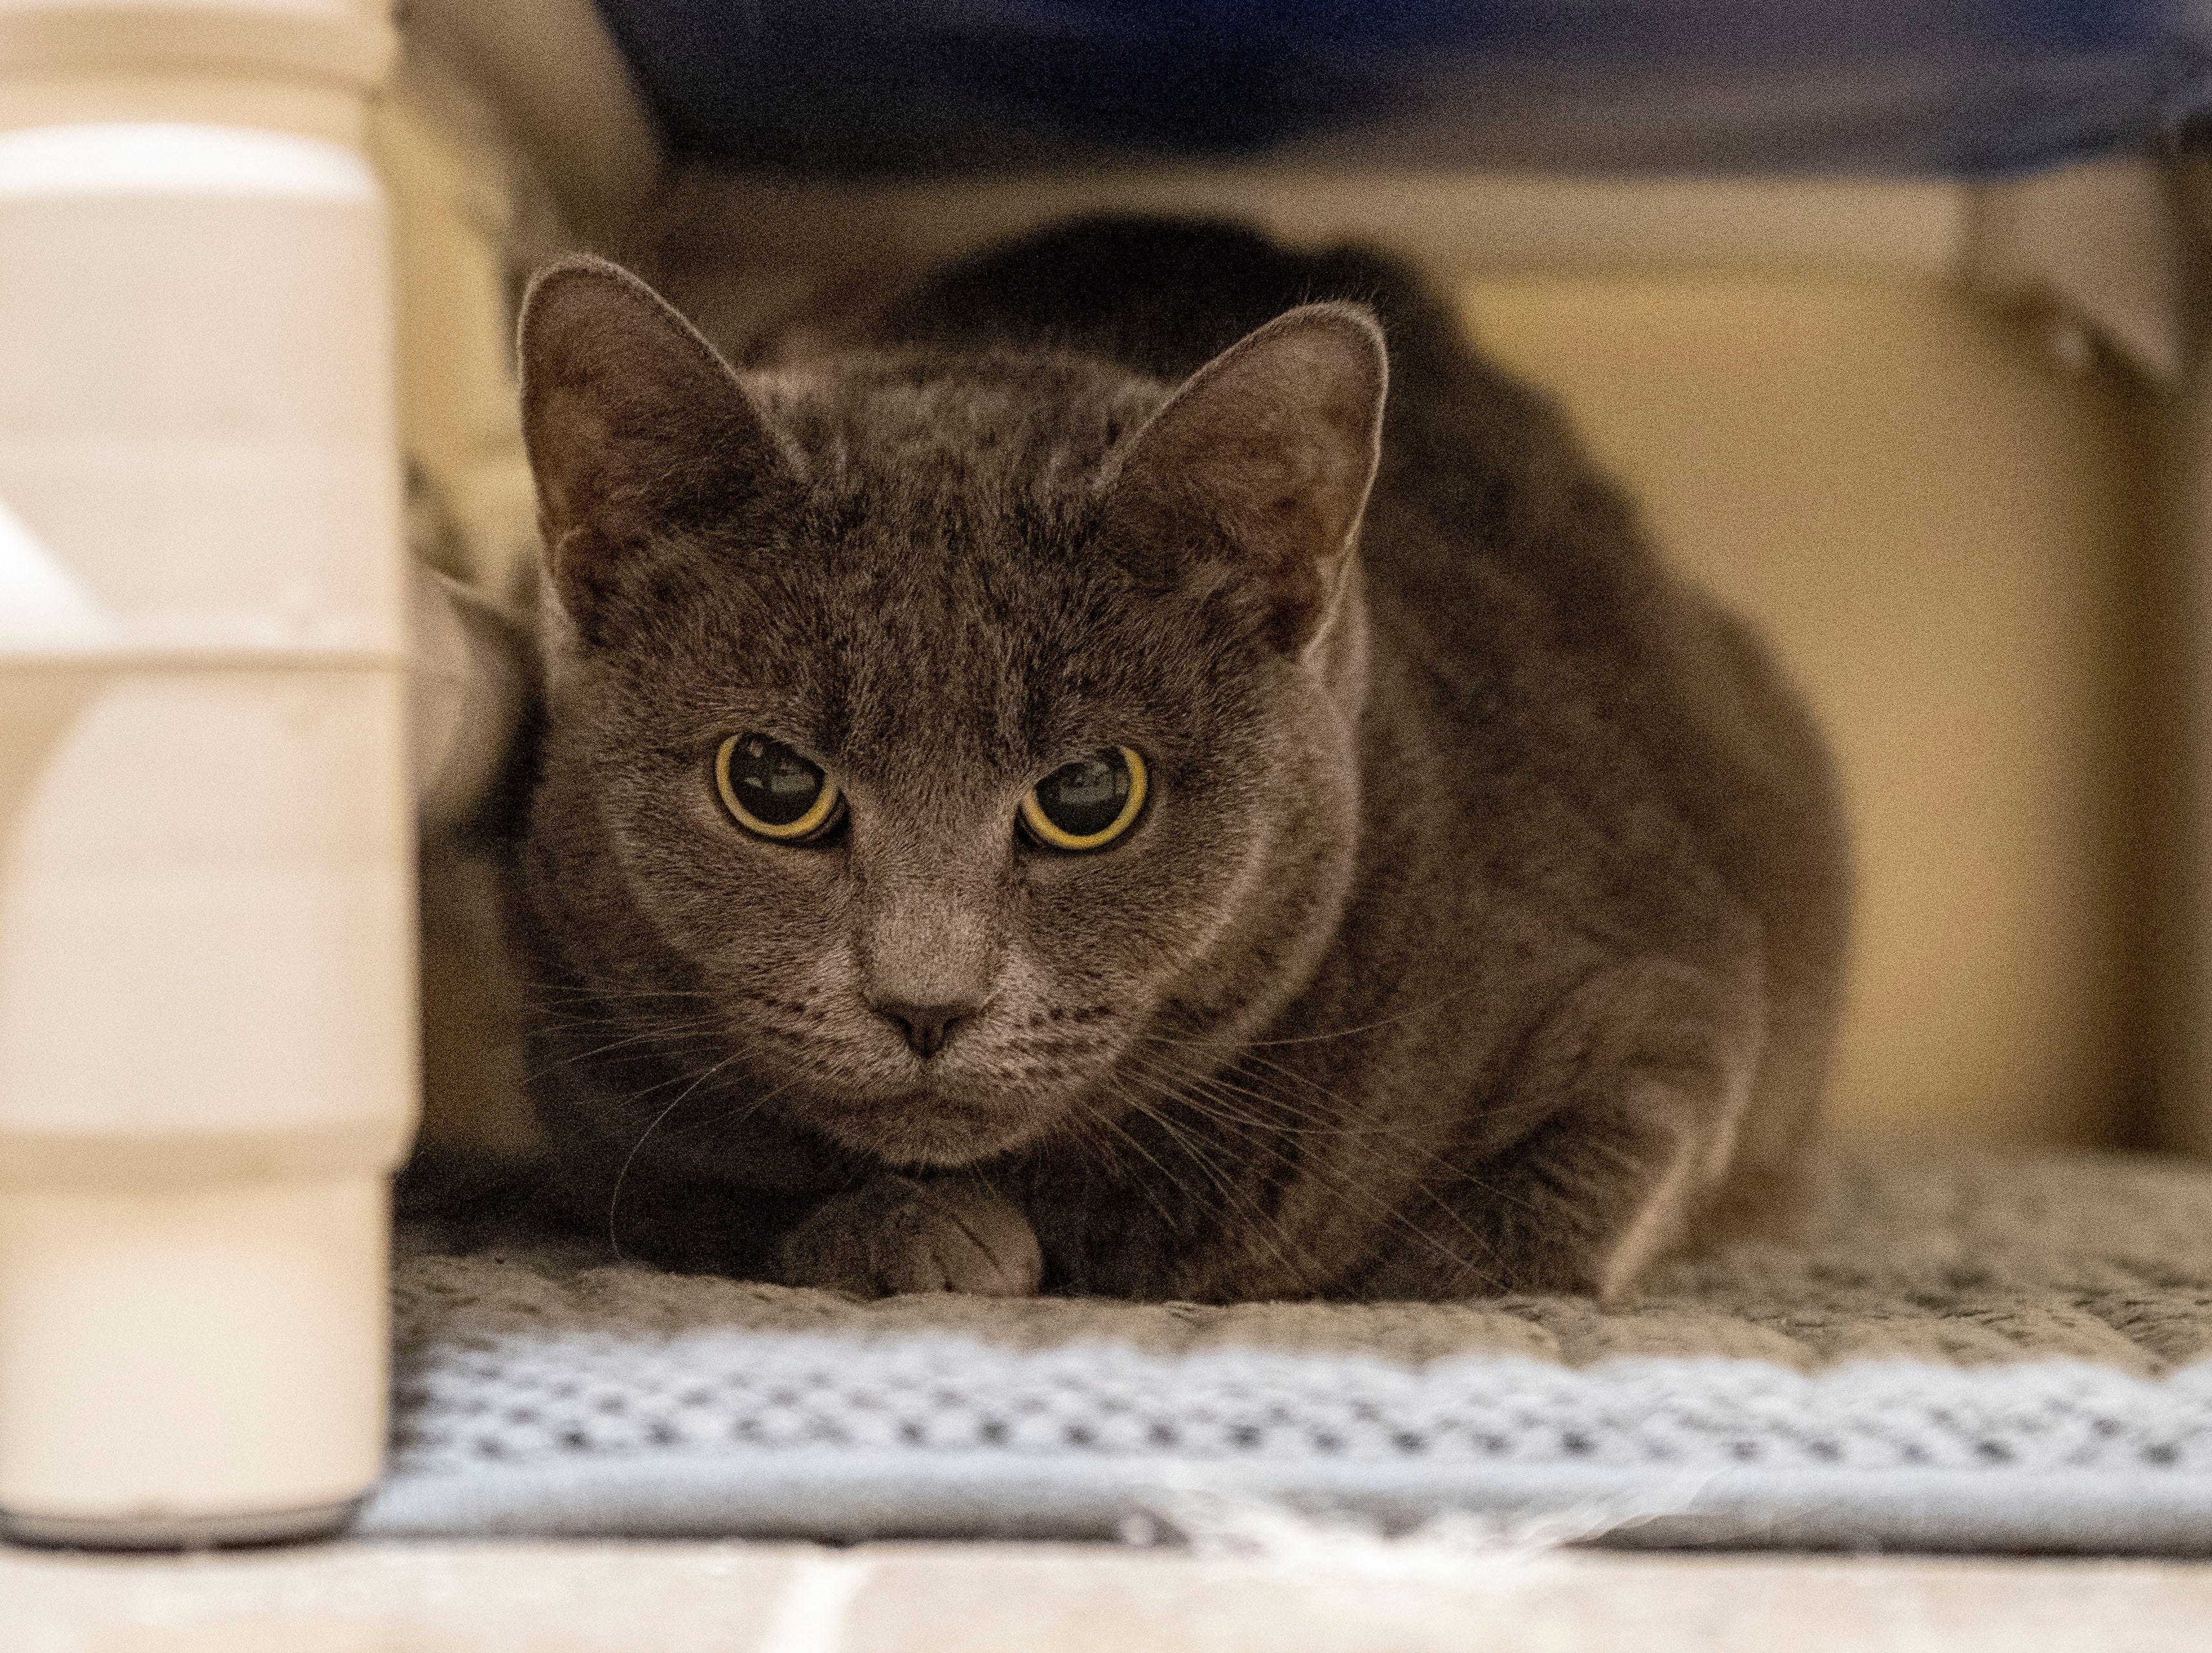 Pearl, a 5-year old gray cat, at the York County SPCA, Thursday, Feb. 7, 2019. Pearl was brought into the shelter after her owner died.